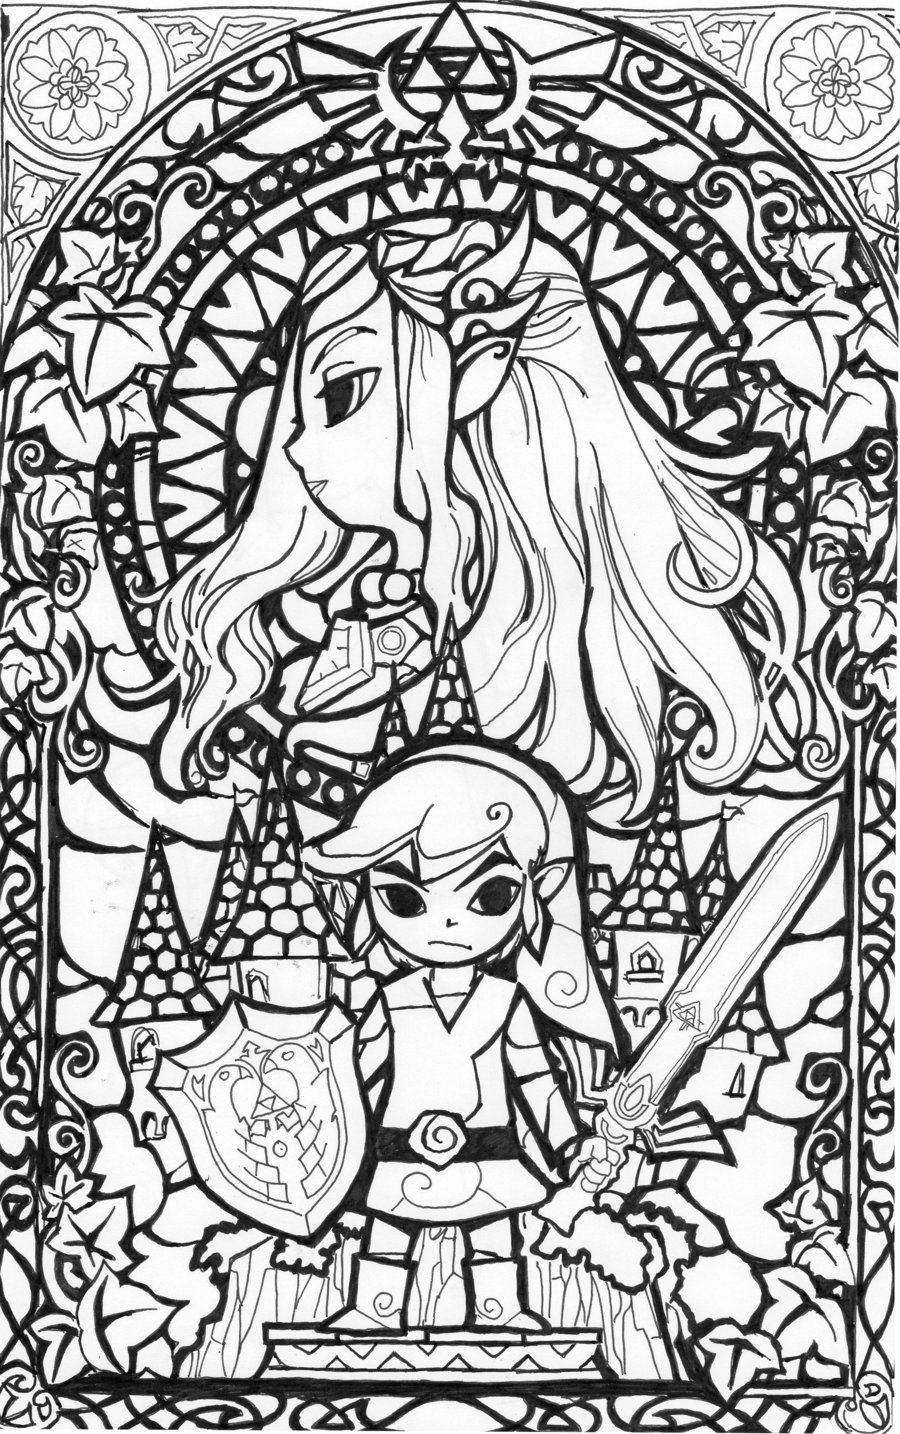 awesome stained glass zelda coloring page gonna try this in watercolors later